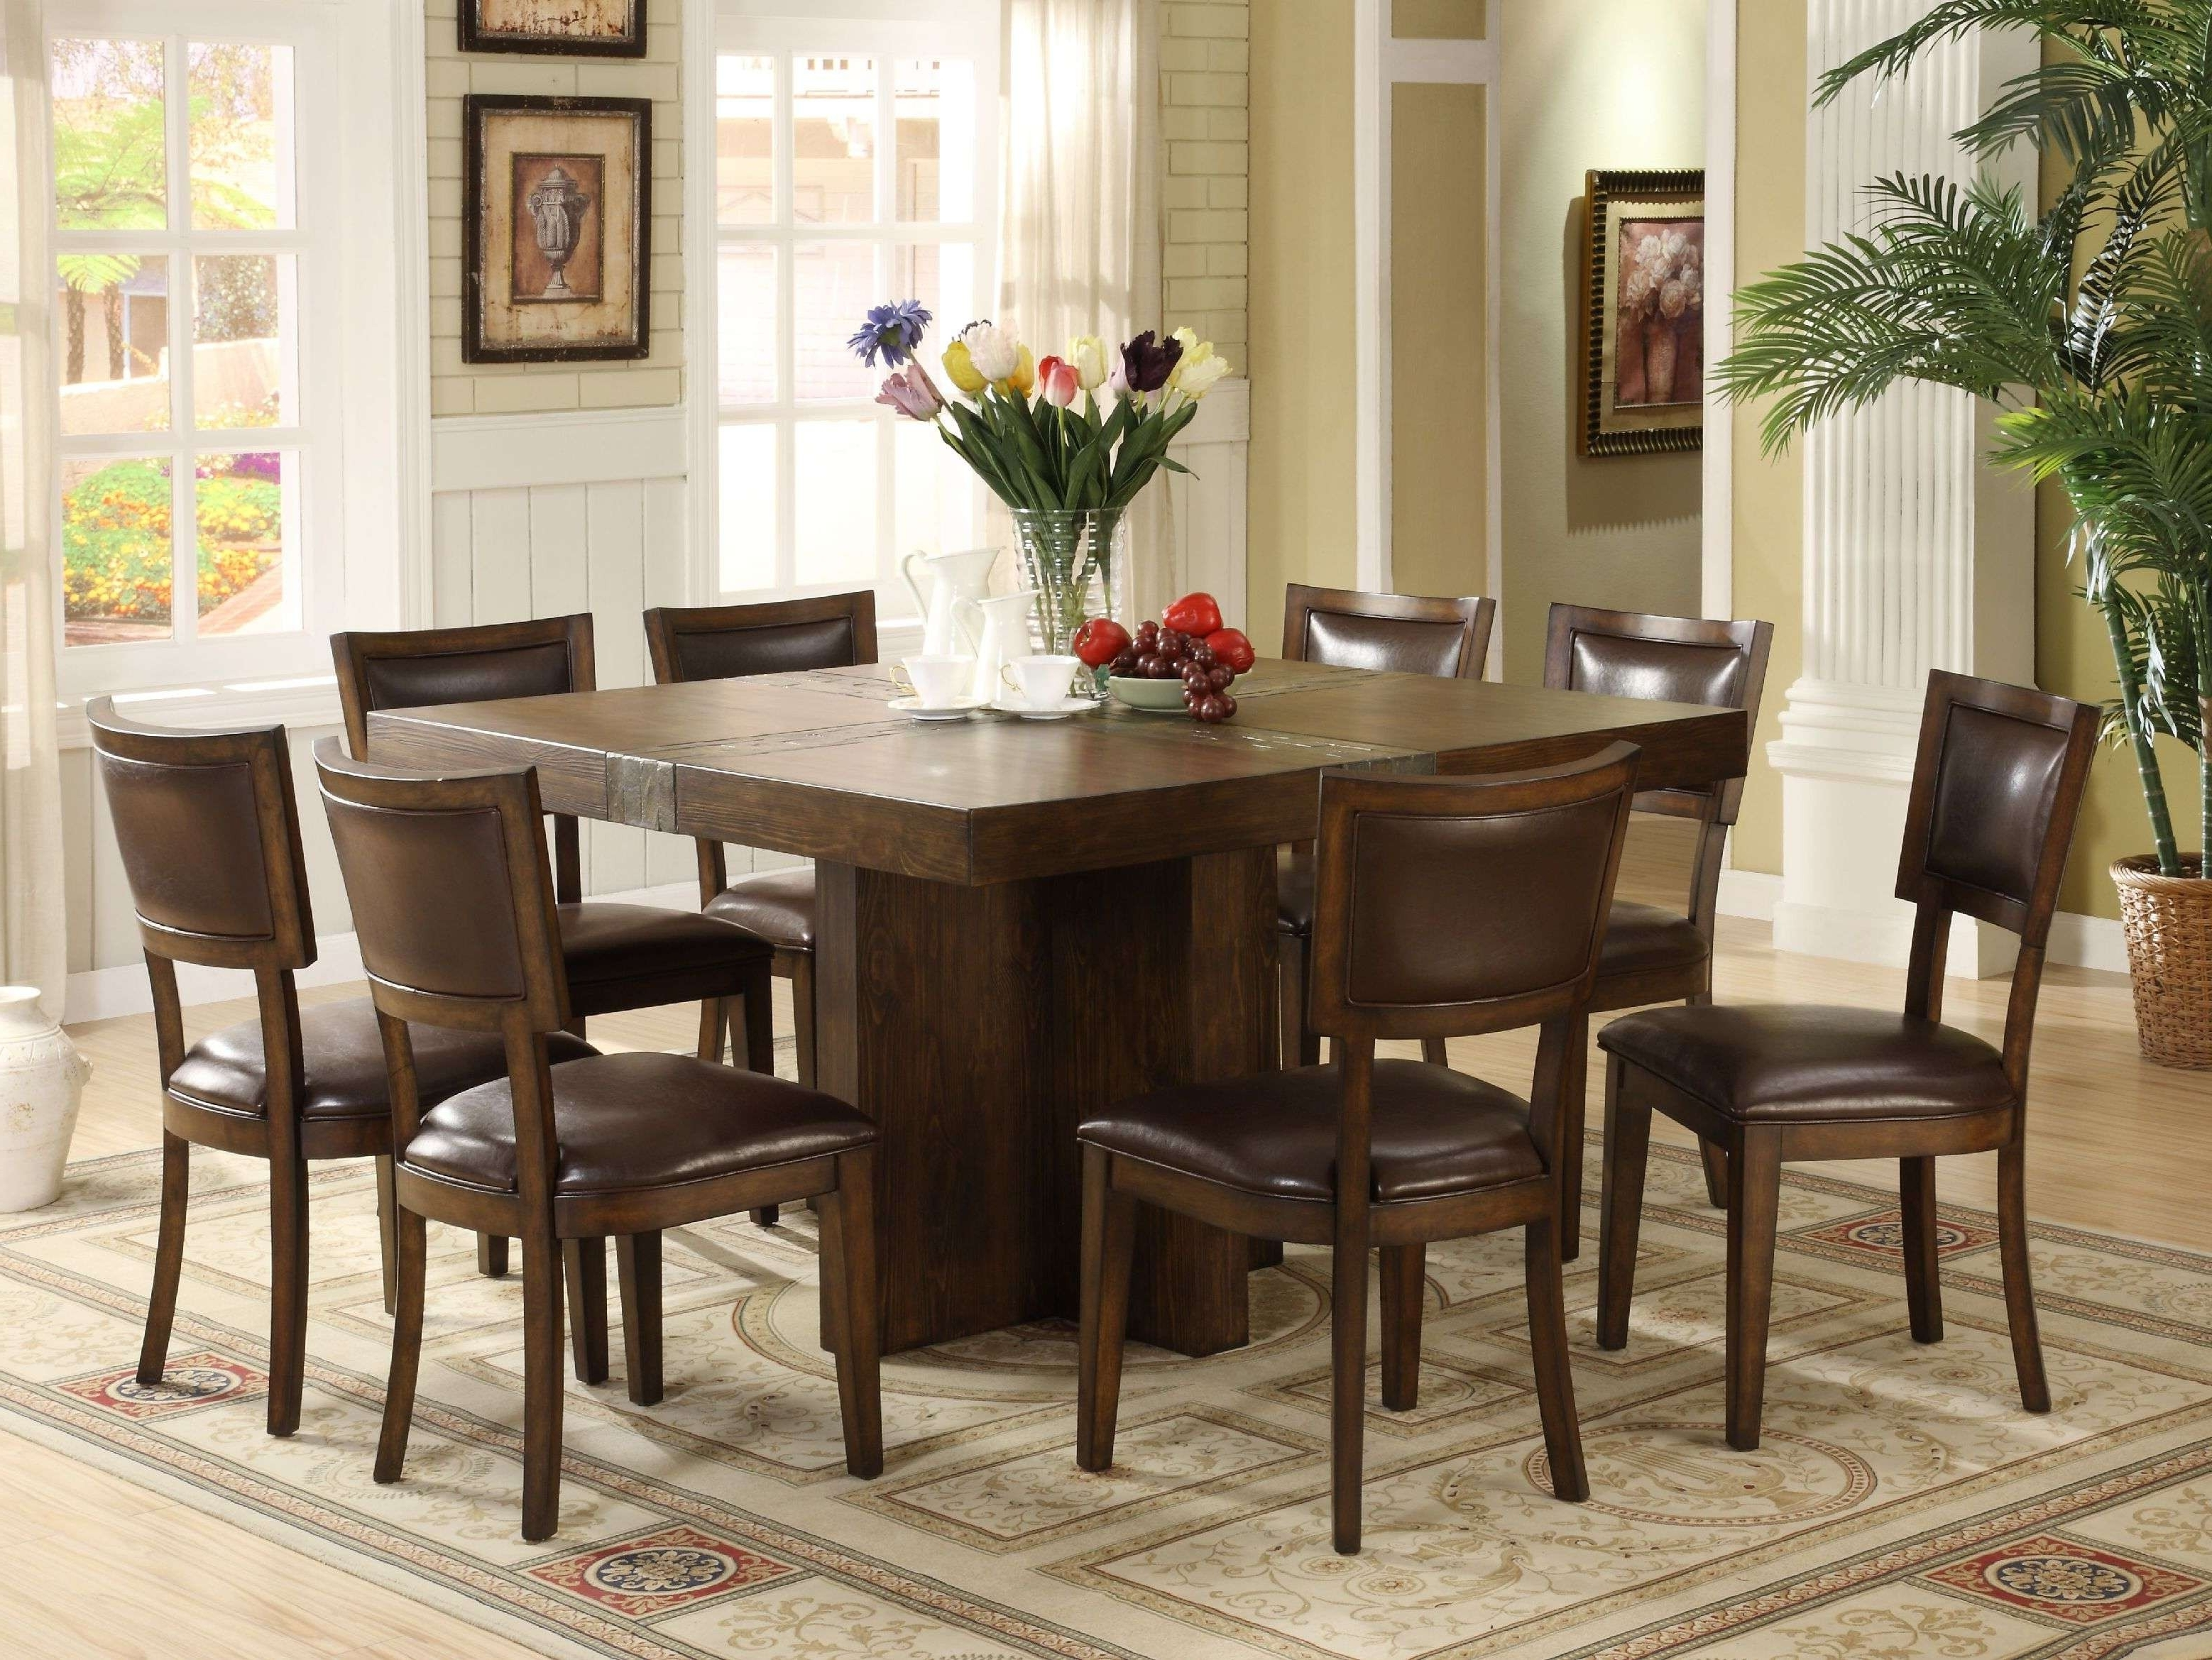 8 Chairs Dining Tables Pertaining To Most Current Solid Oak Dining Room Table And 8 Chairs Unique Best 8 Seater Dining (Gallery 14 of 25)